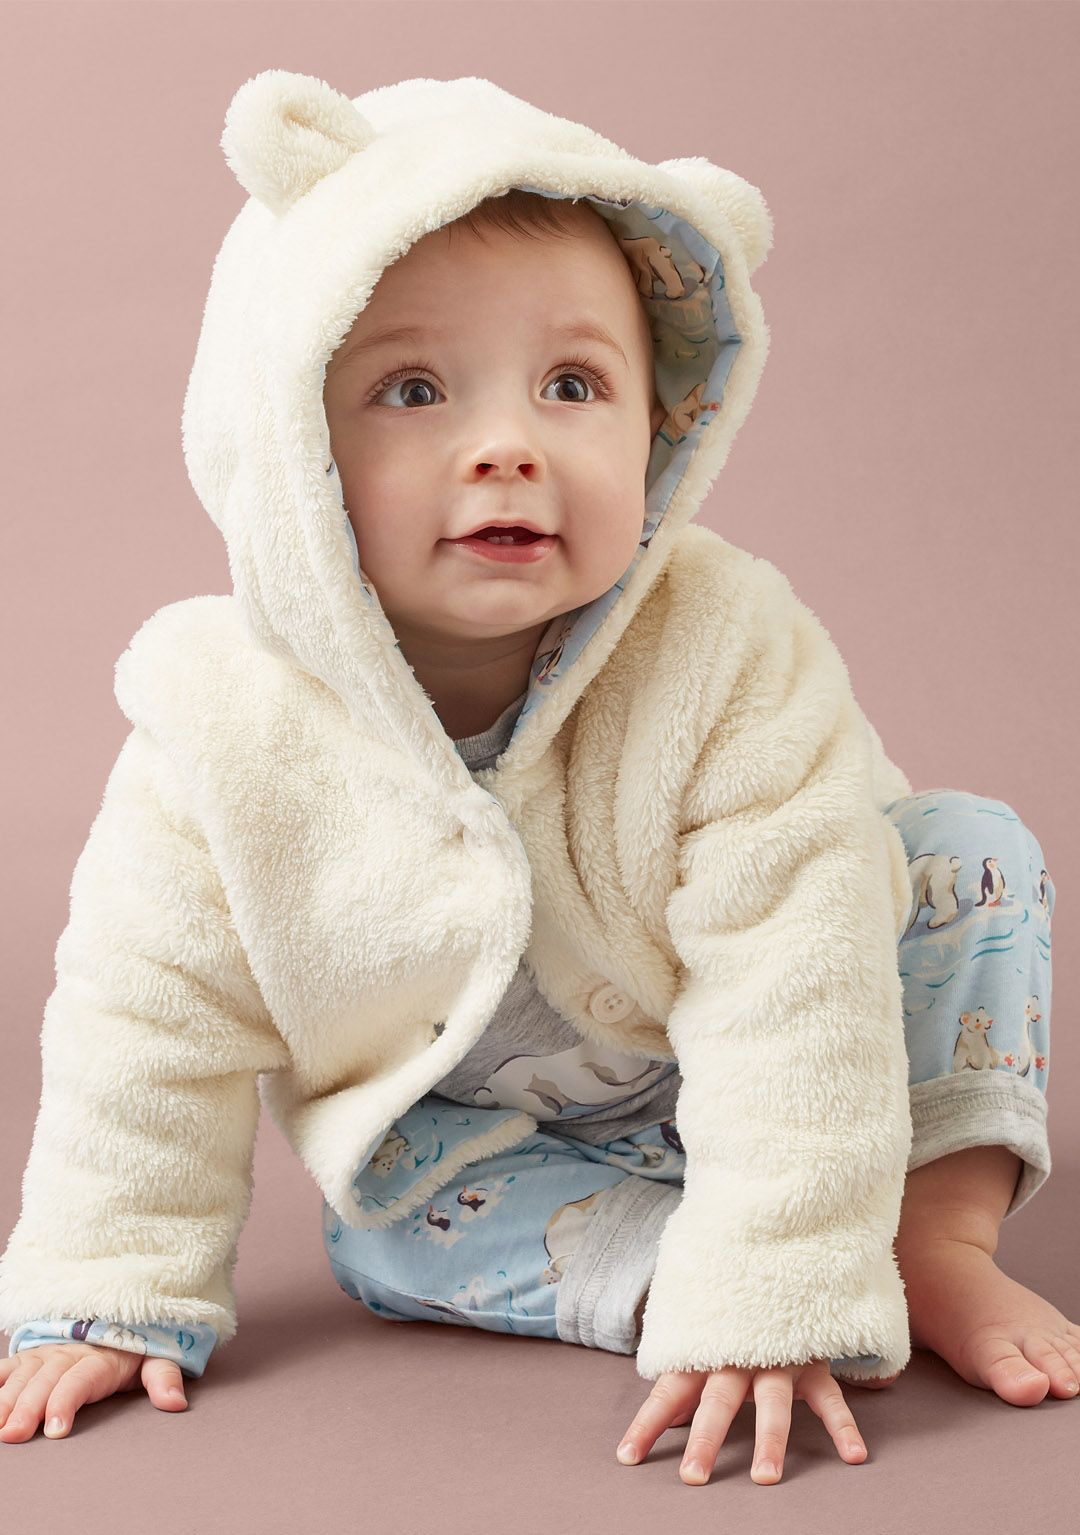 We Have Gorgeous Baby Clothing For The Festive Season Auntie M